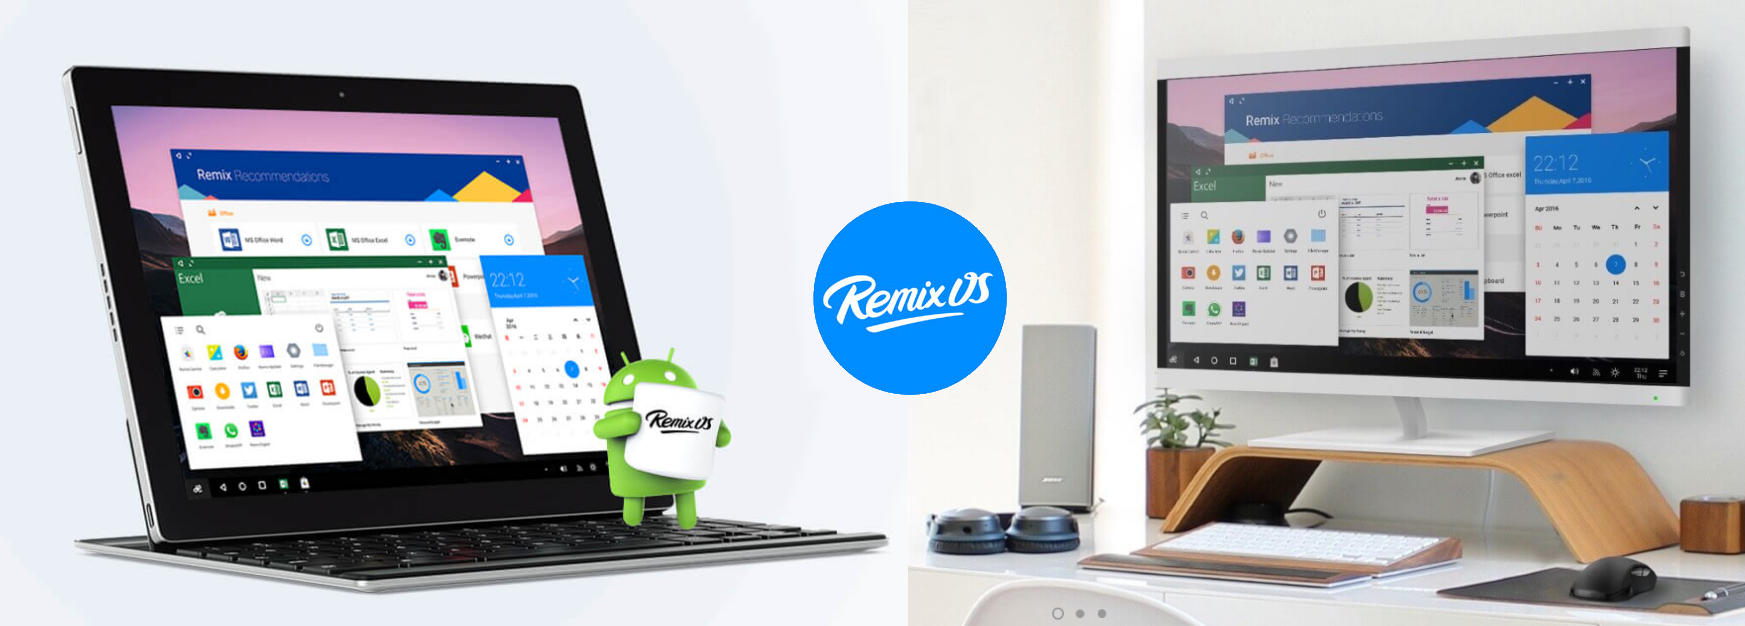 Remix_OS_Android_PC_Tablet_Windows_Dual_Boot